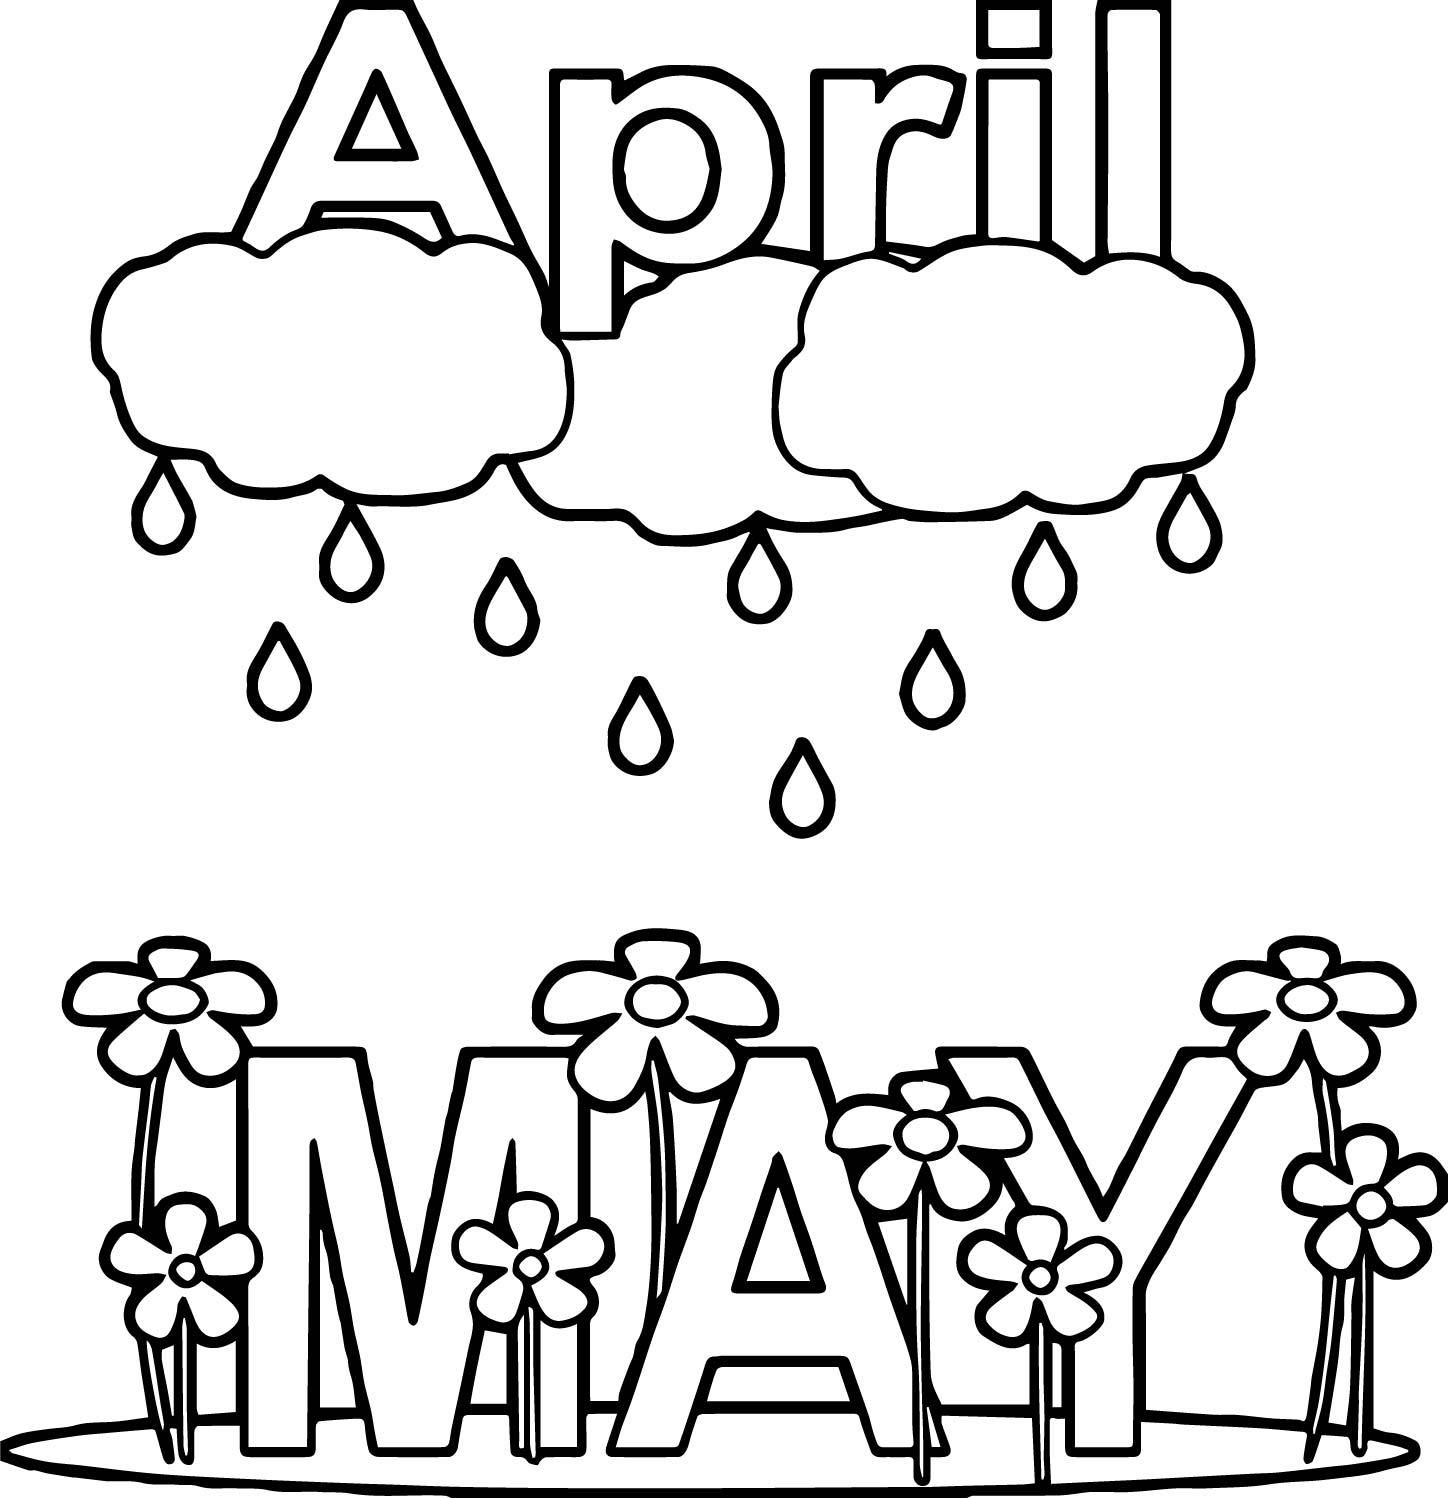 Rain Coloring Pages: April Shower May Rain Flower Coloring Page